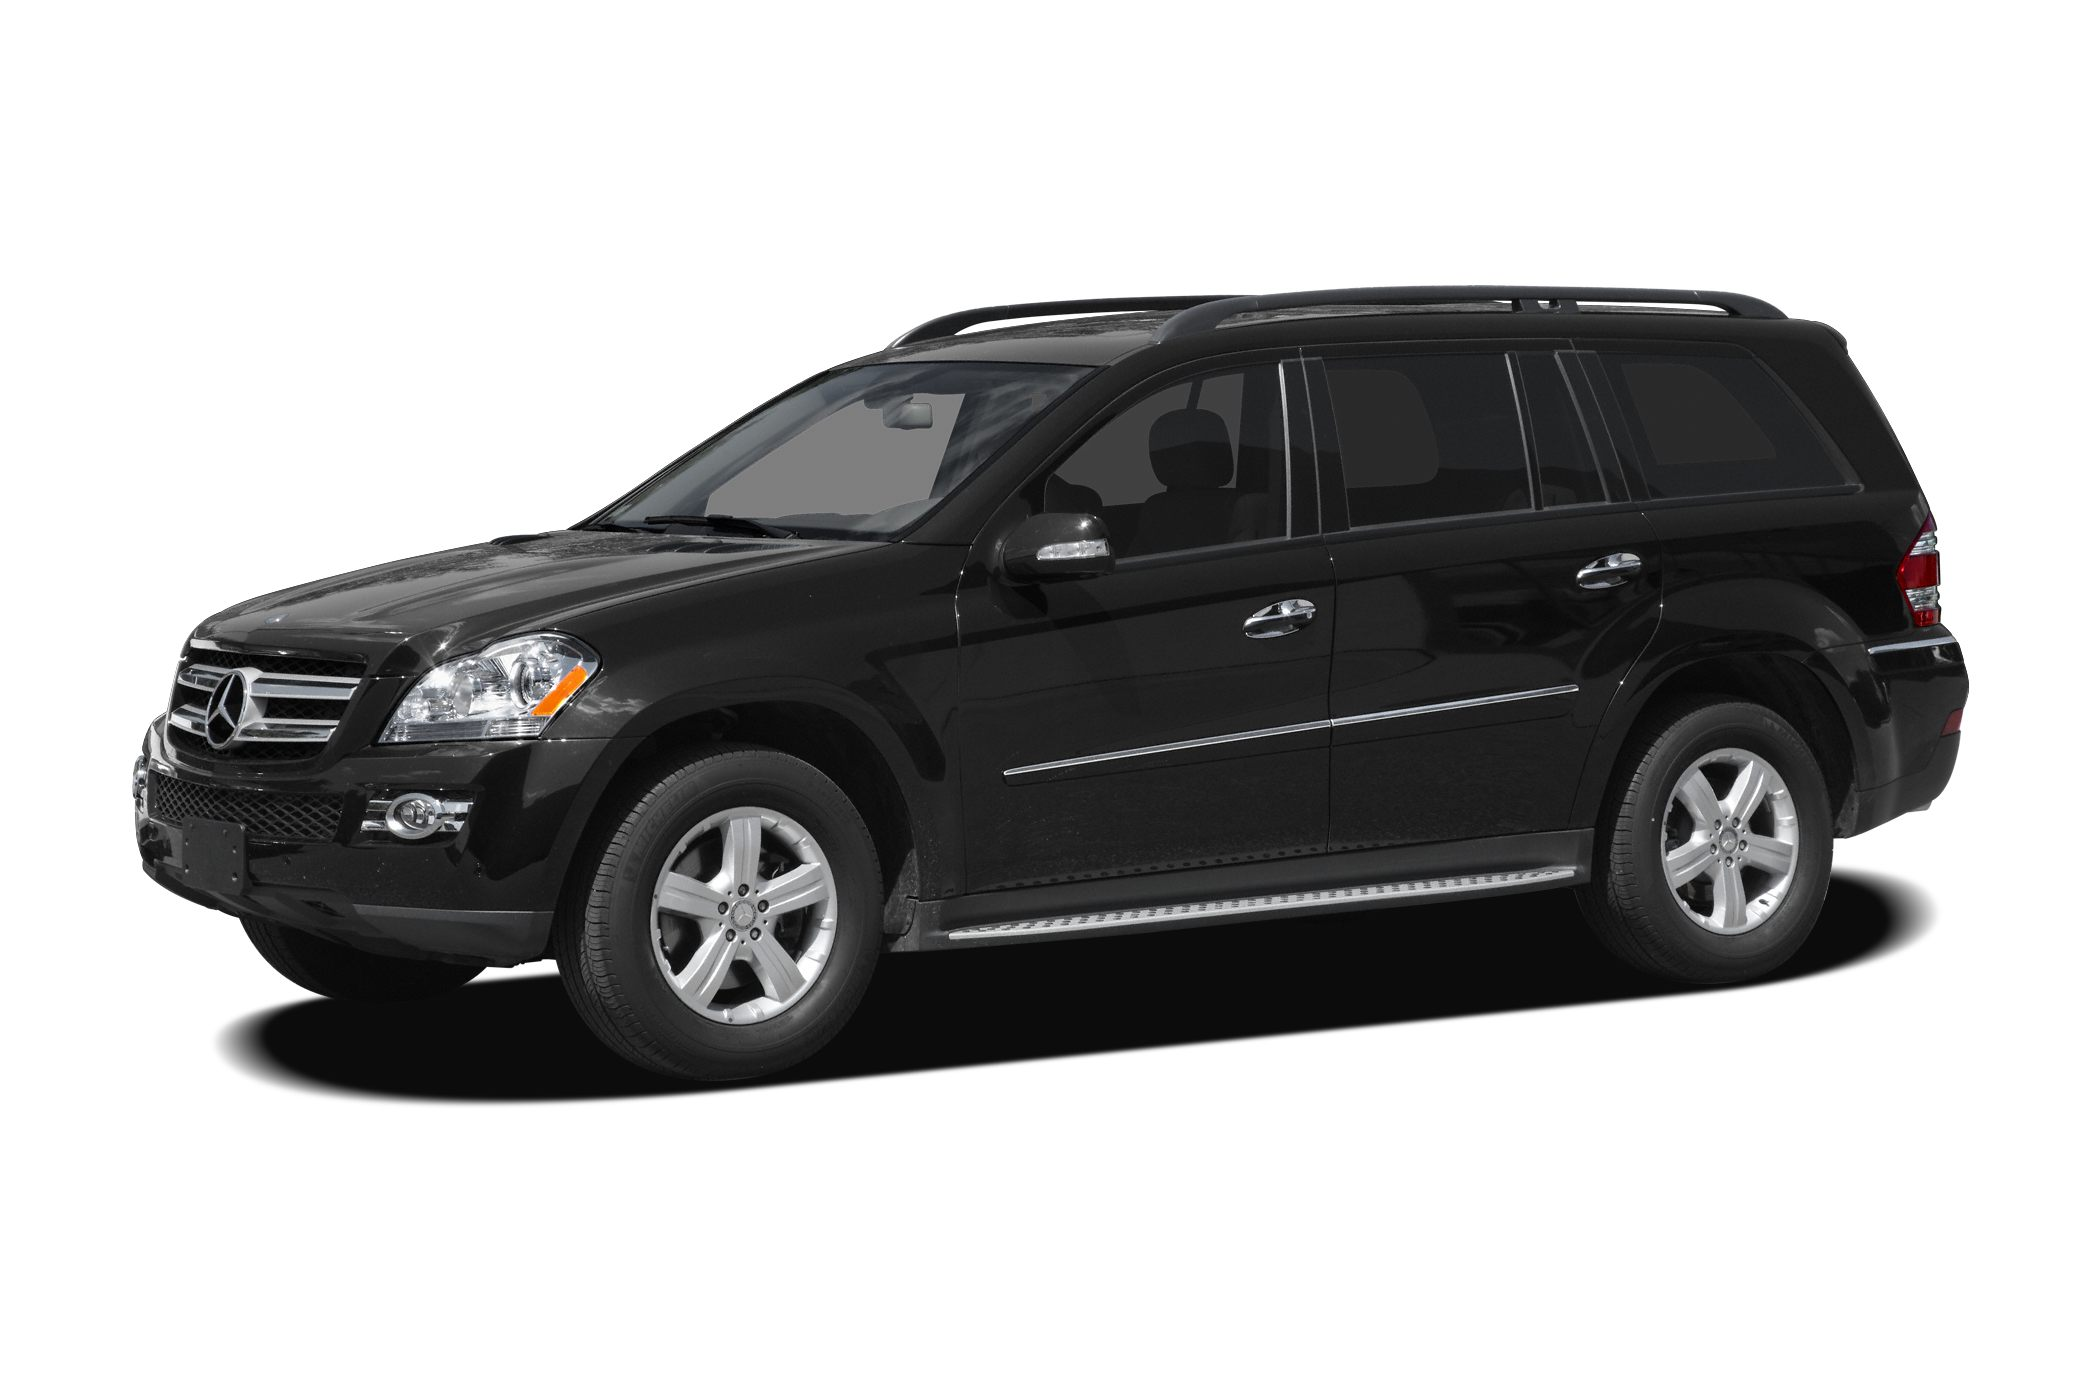 2008 Mercedes-Benz GL-Class GL320 CDI 4MATIC SUV for sale in Fort Worth for $21,995 with 94,001 miles